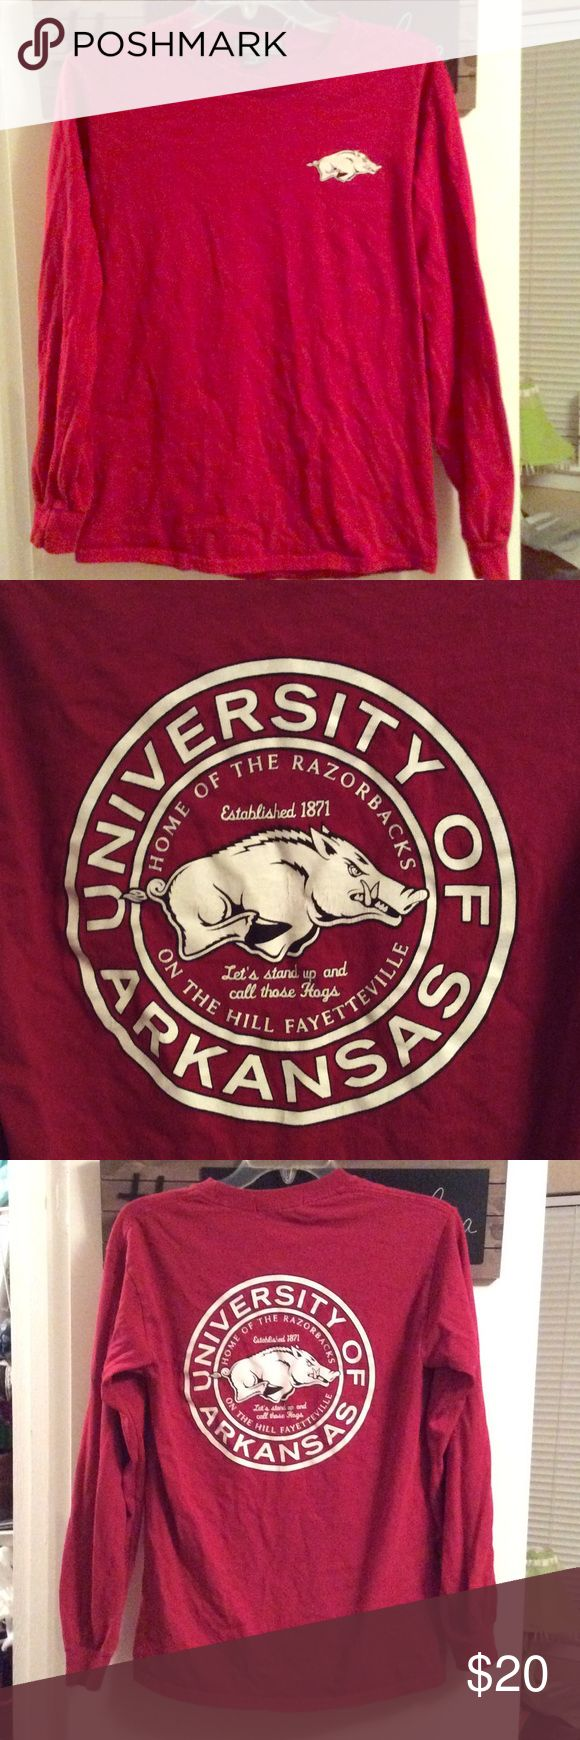 Arkansas Razorback shirt One of my favorite shirts. Sadly, too small for me now. Excellent, like new condition. houndstooth clothing company  Tops Tees - Long Sleeve